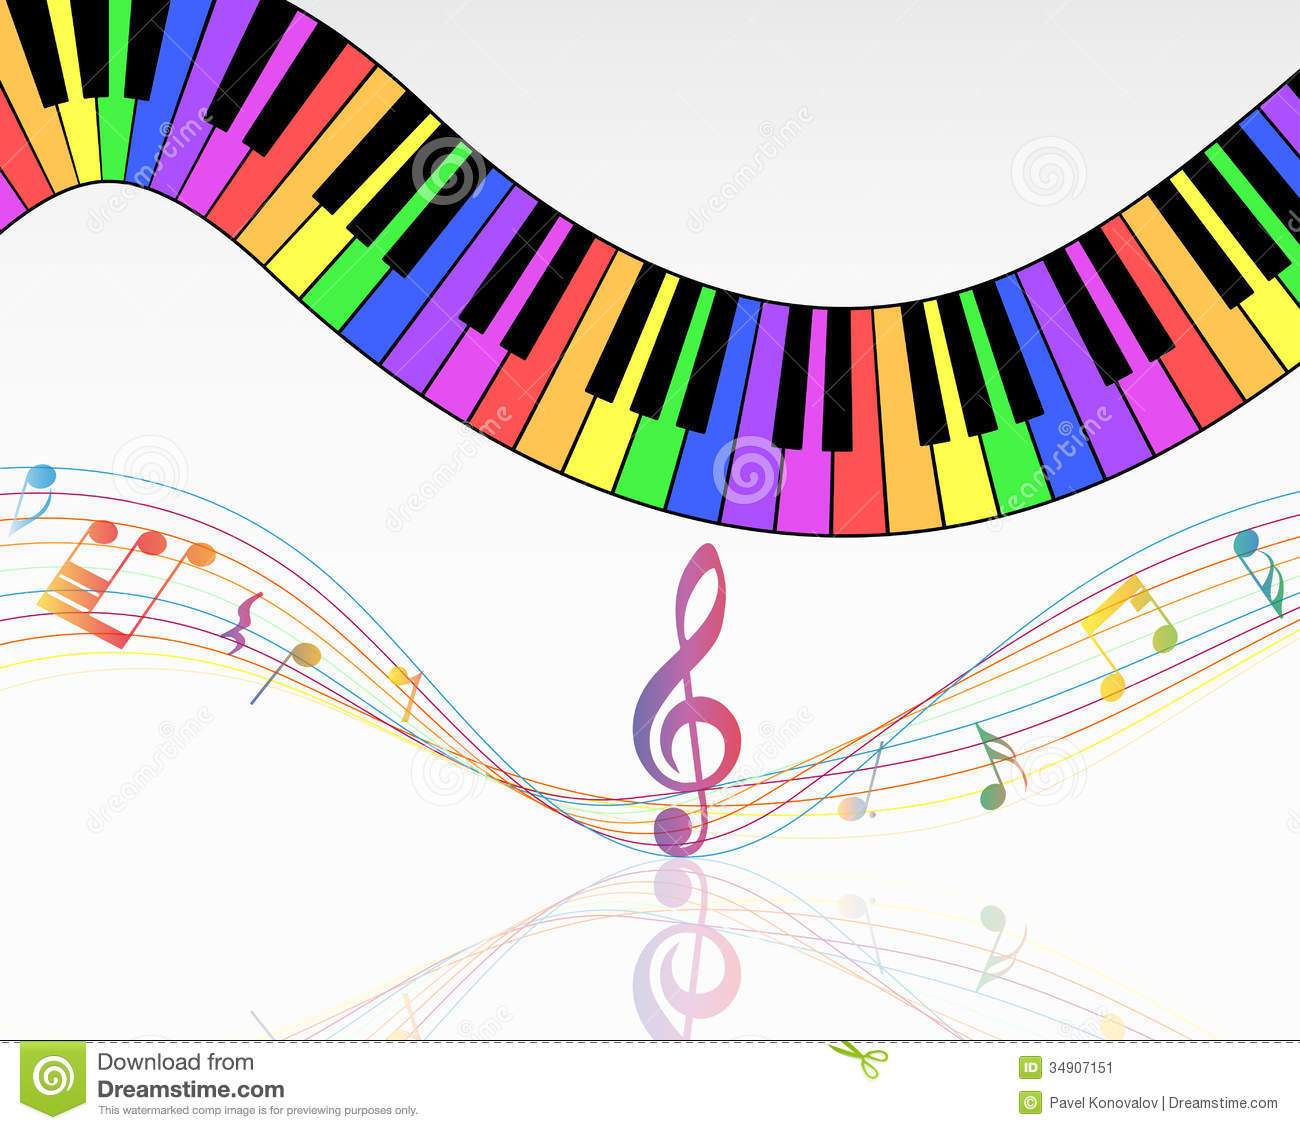 Clip art transparent background musical note staff background vector